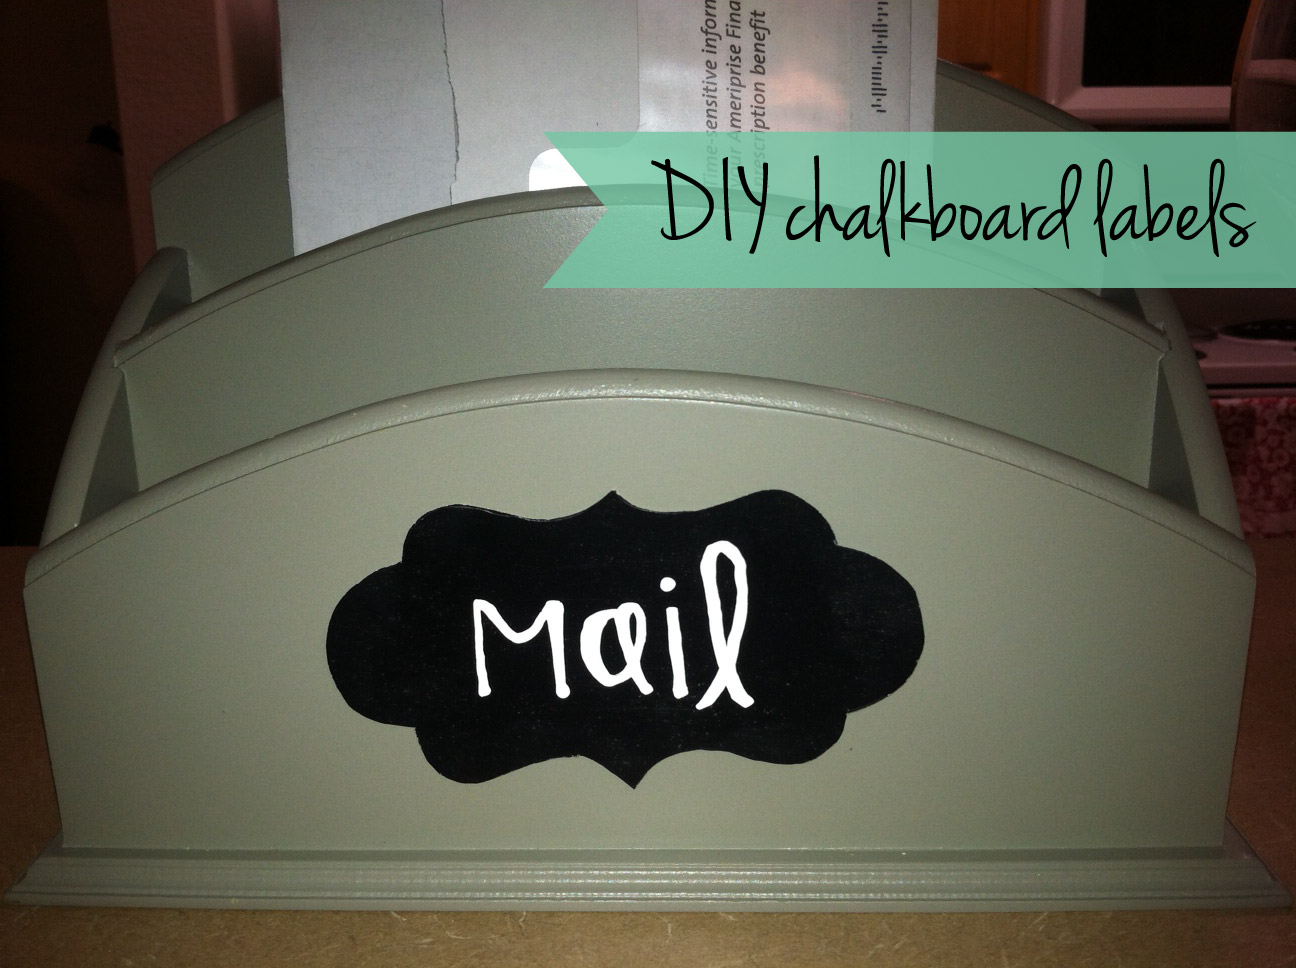 Thrift and craft it diy chalkboard labels for Diy chalk labels